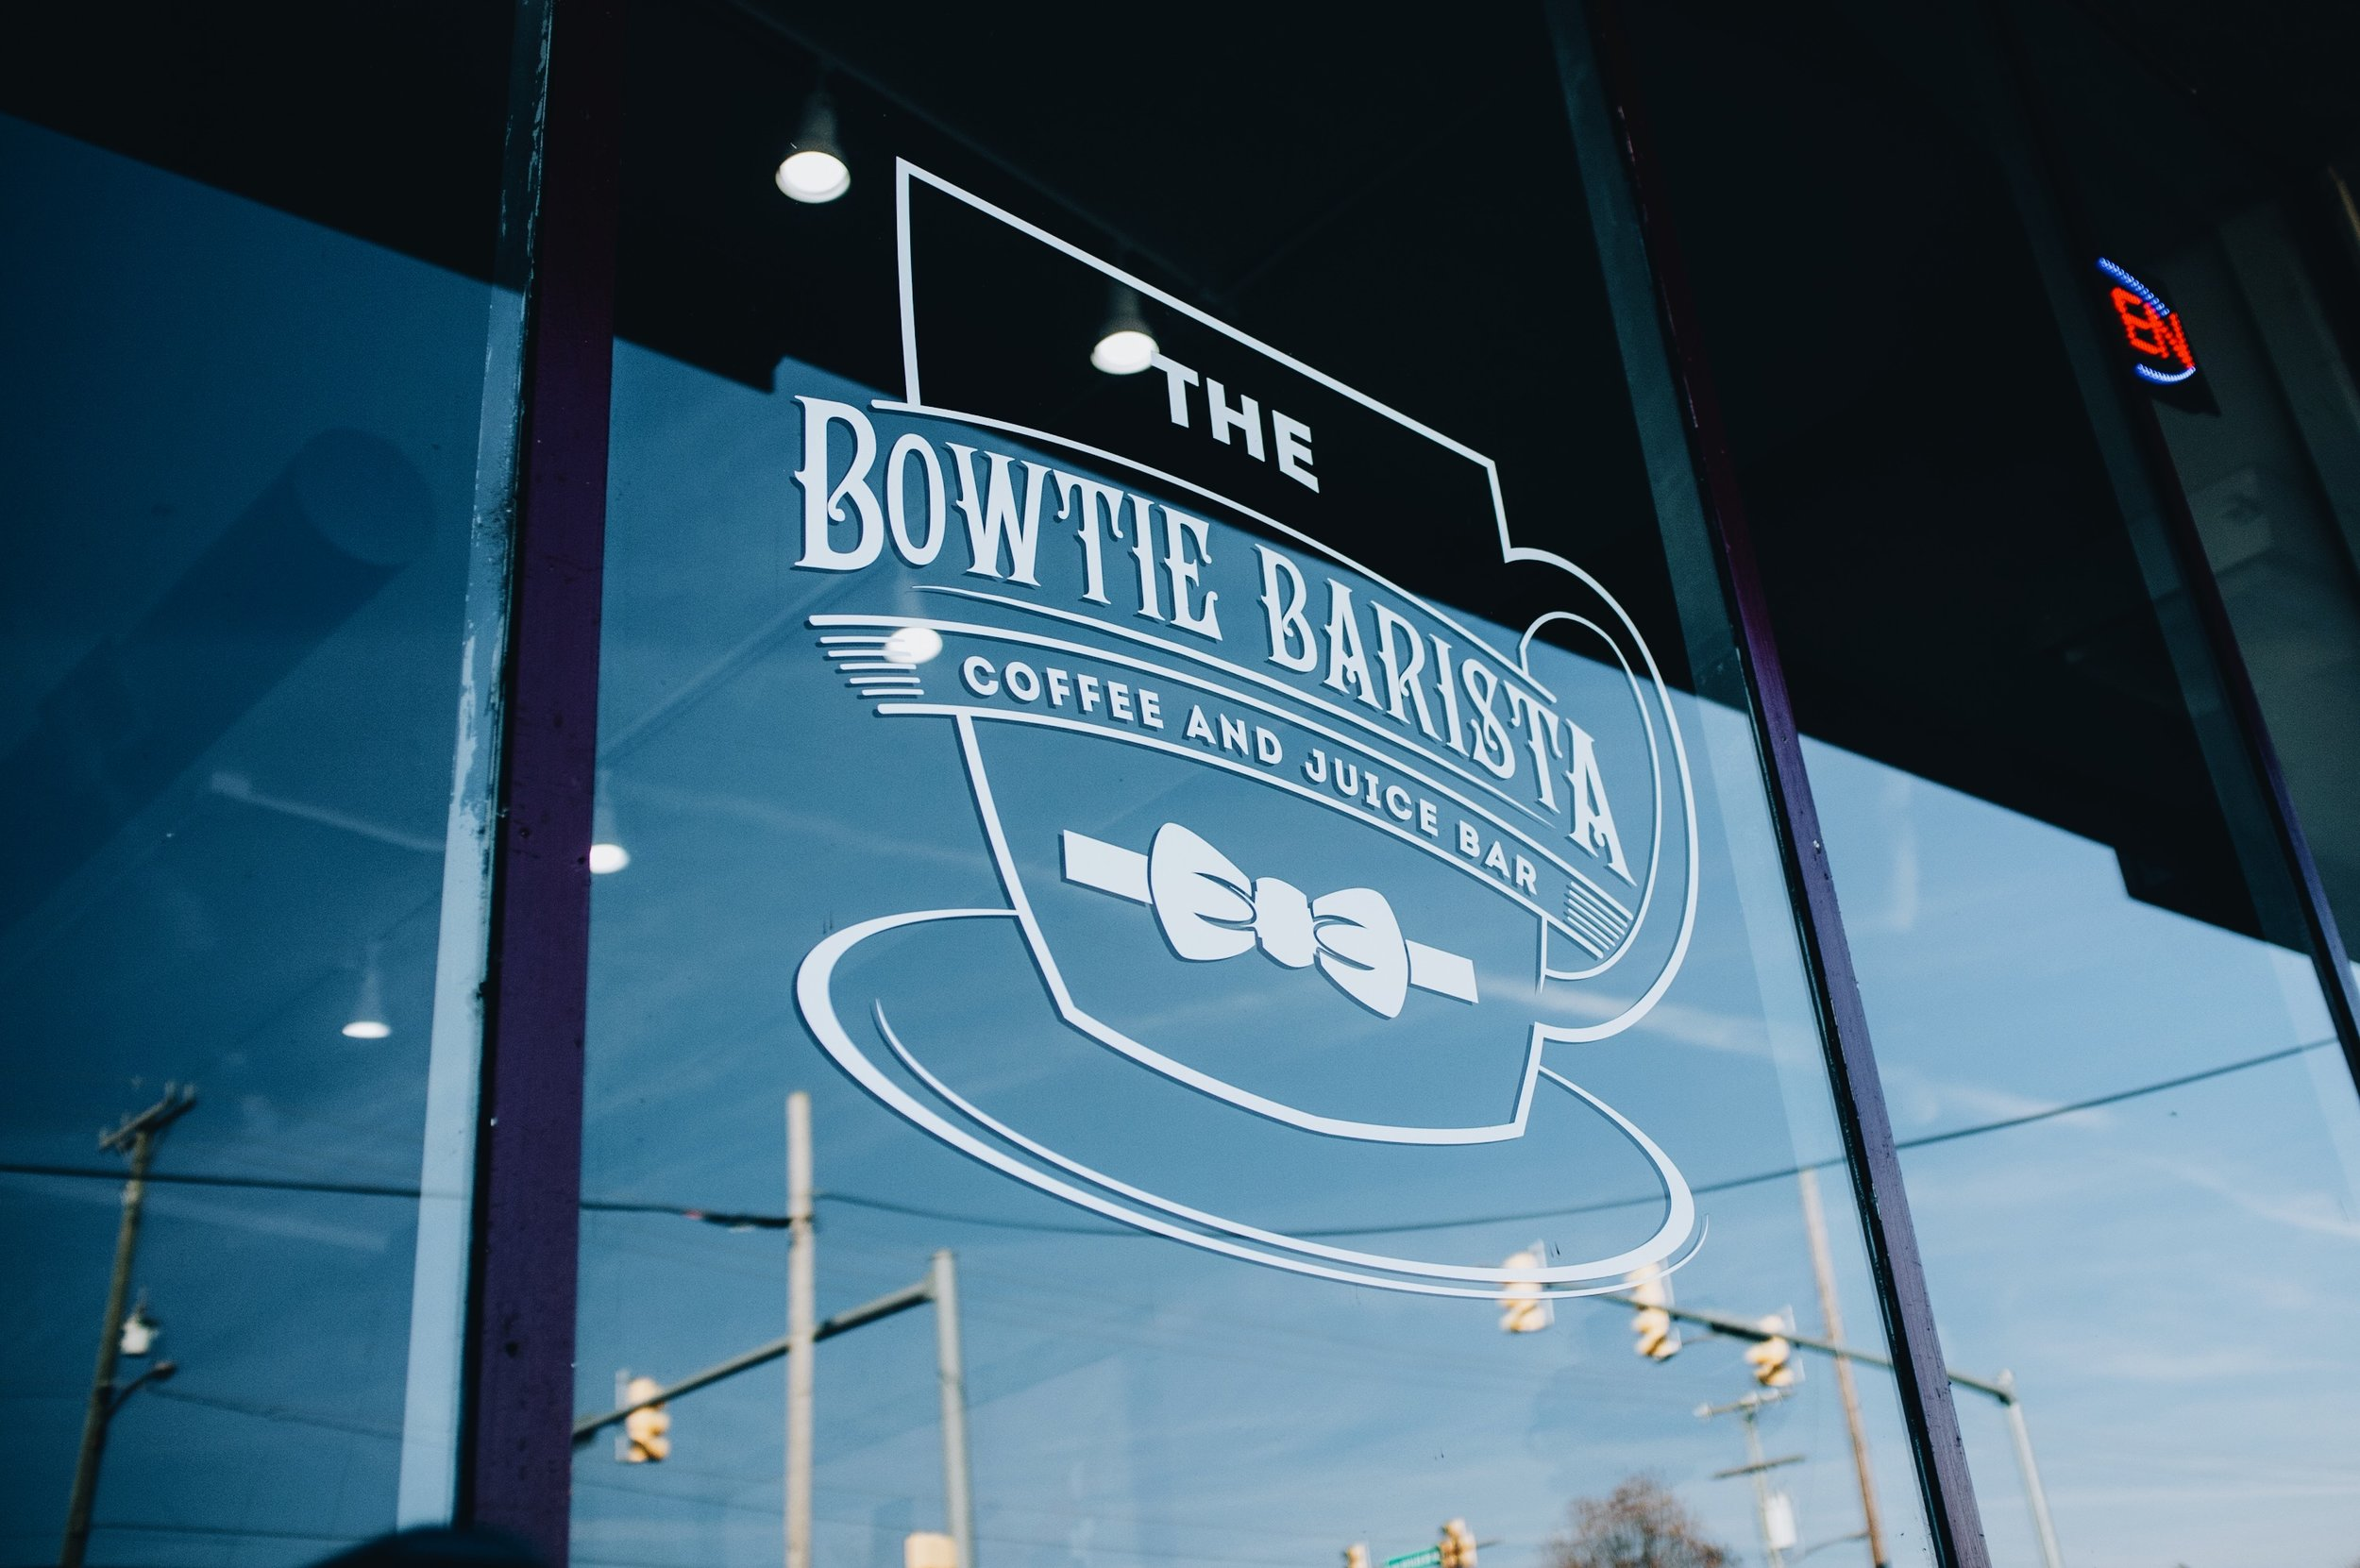 Bowtie Barista window.jpeg